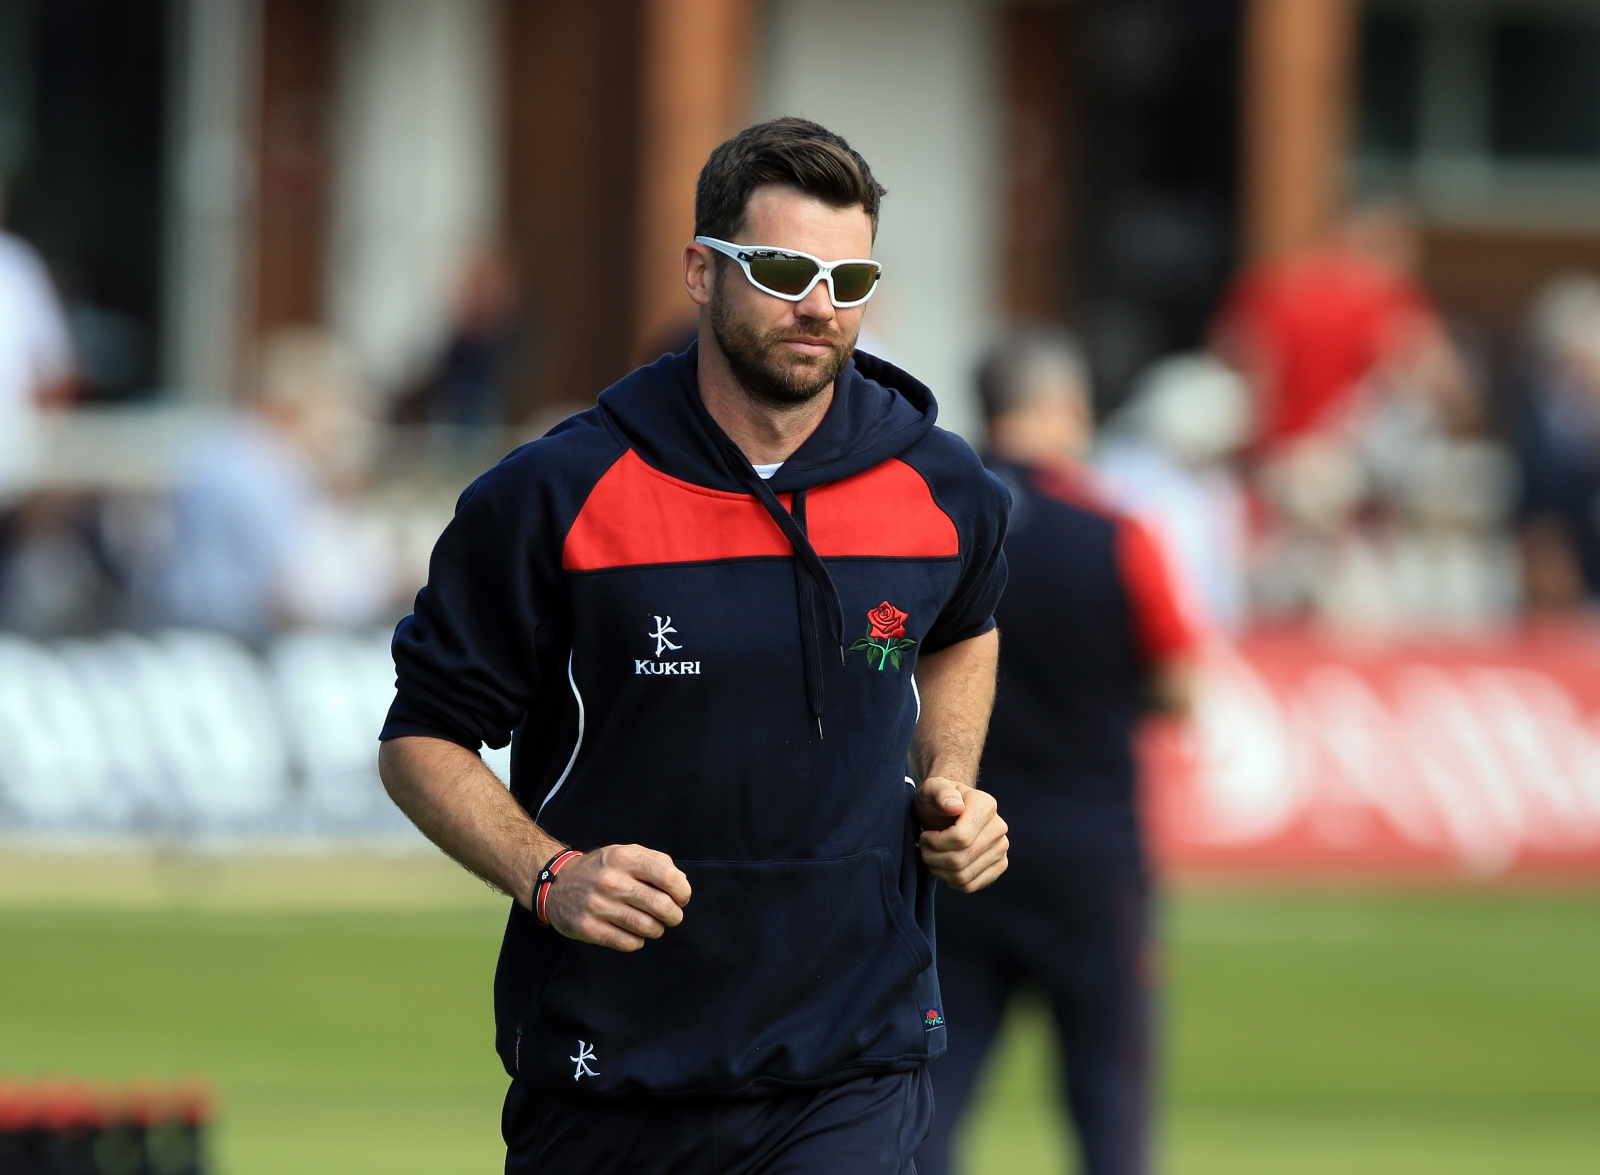 James Anderson, Ben Stokes back in England squad following injuries